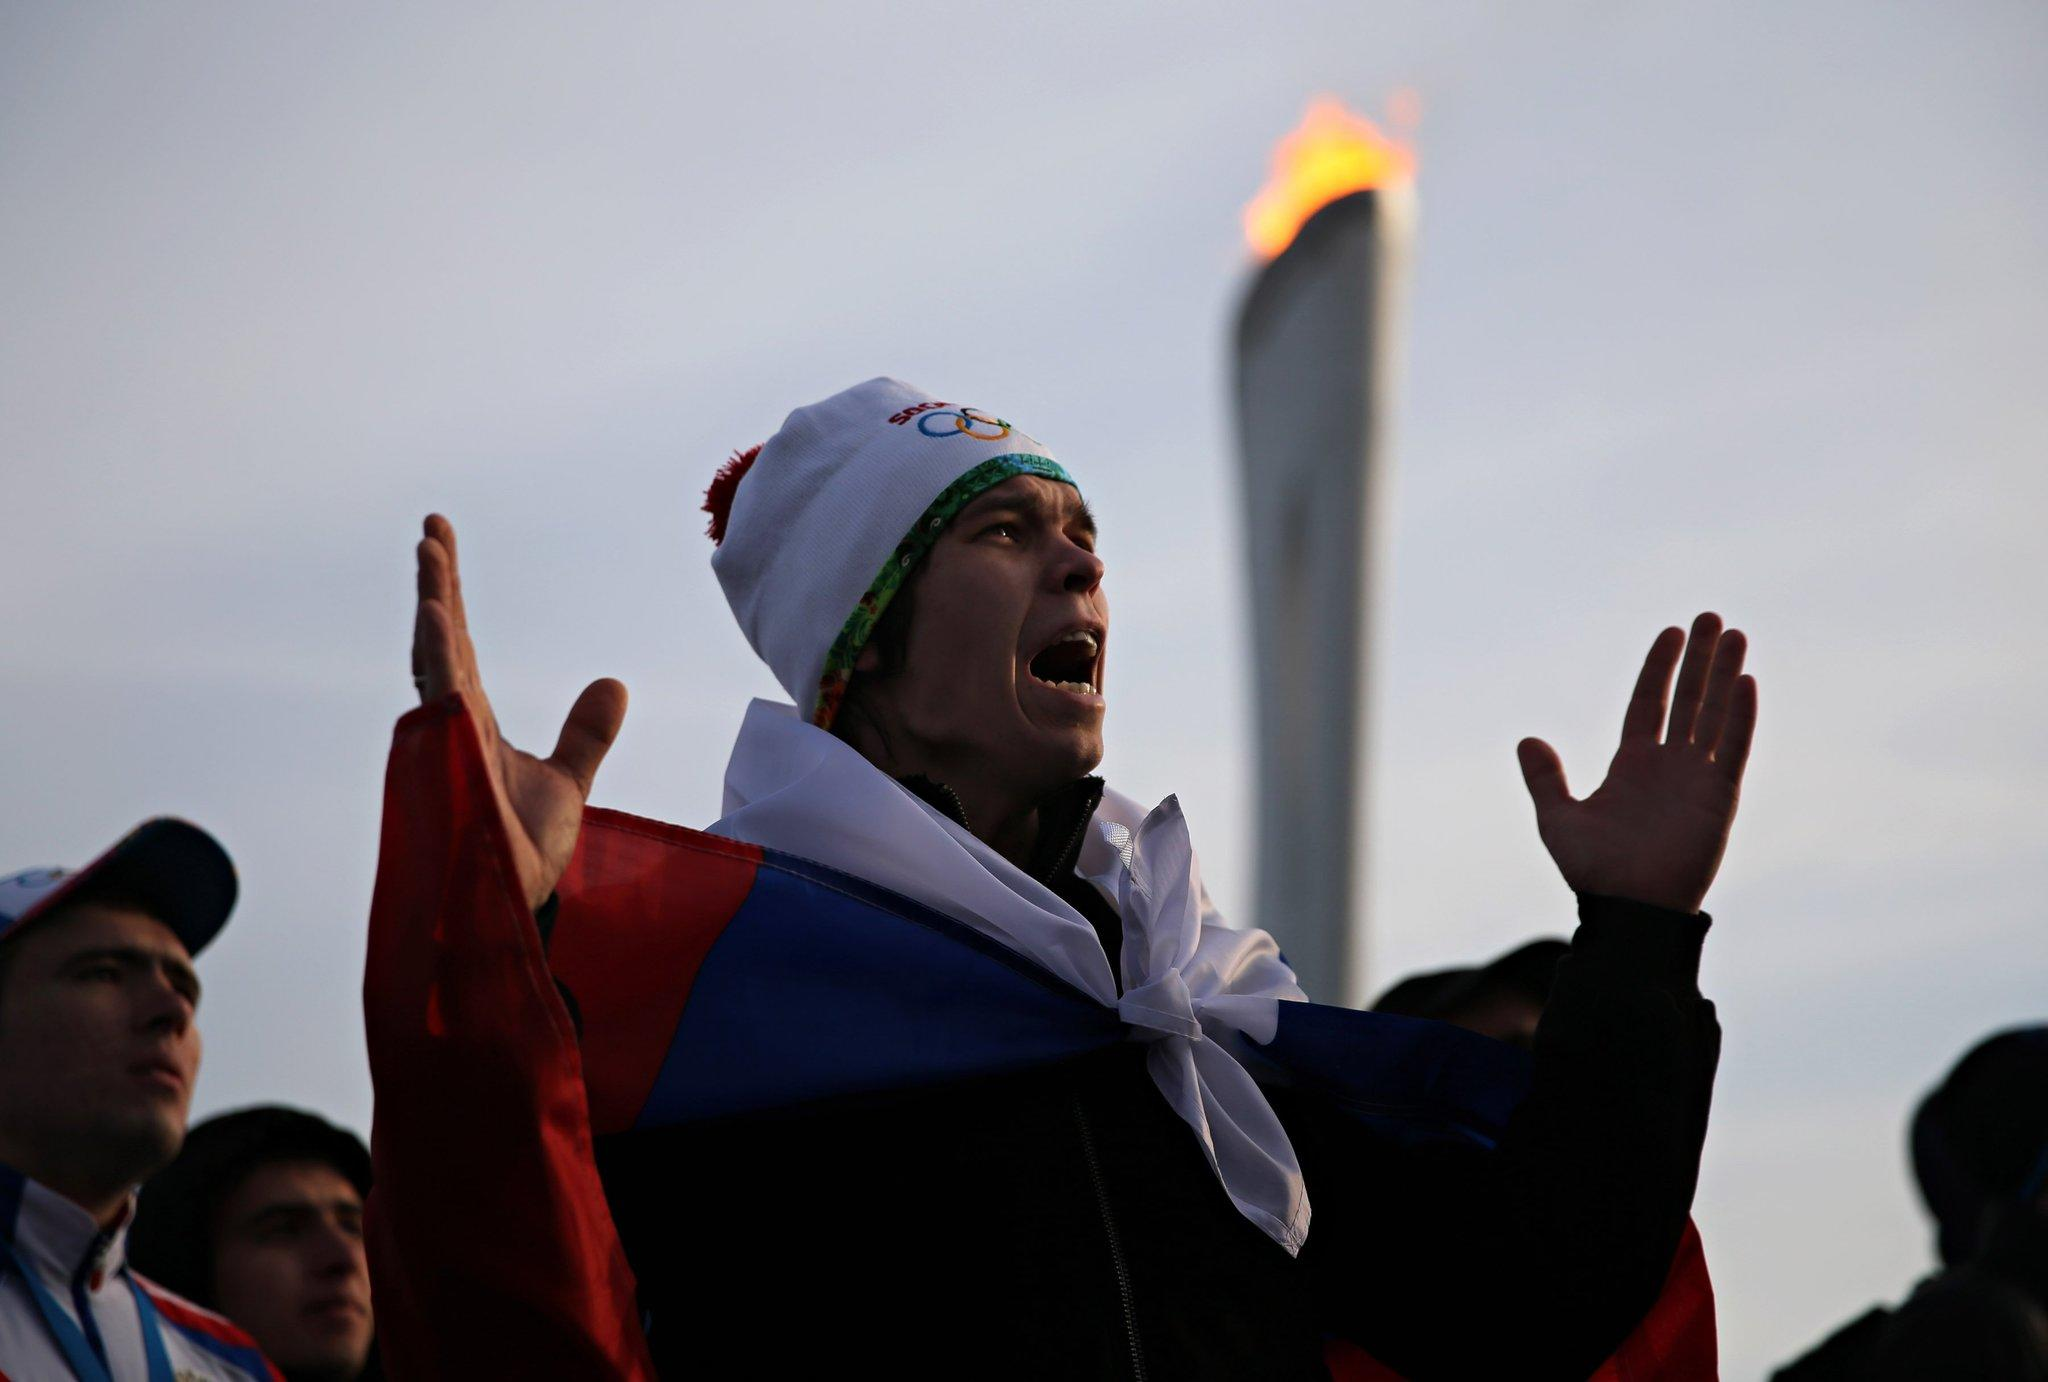 A fan wearing a Russian flag in Olympic Park reacts during Russia's 3-1 loss to Finland.